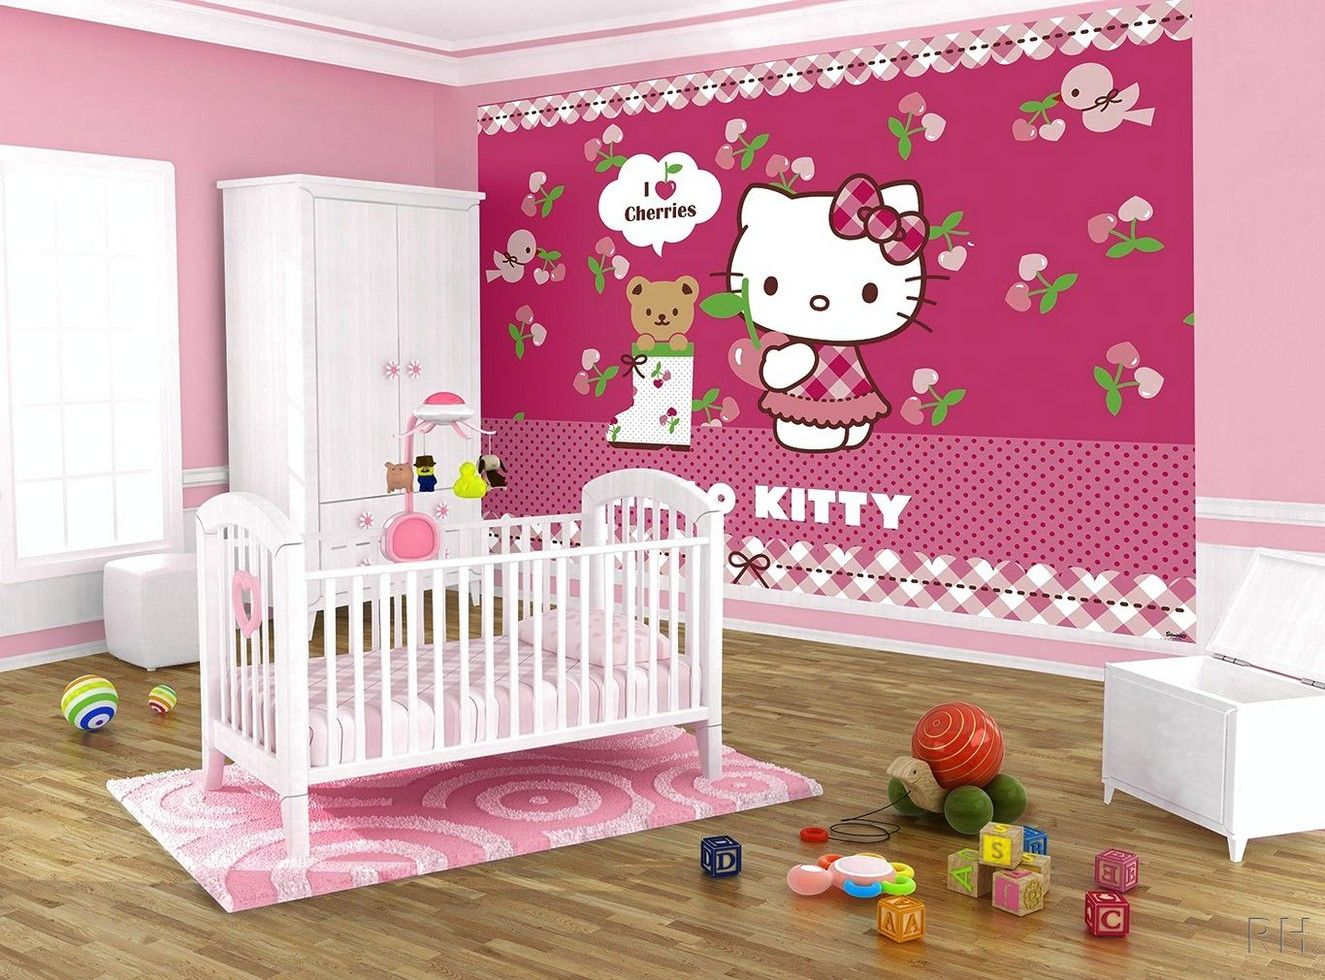 Great Wallpaper Hello Kitty Shelf - a0e58cf4ad55202fdd62ac6bdfe4a503  Collection_42736.jpg